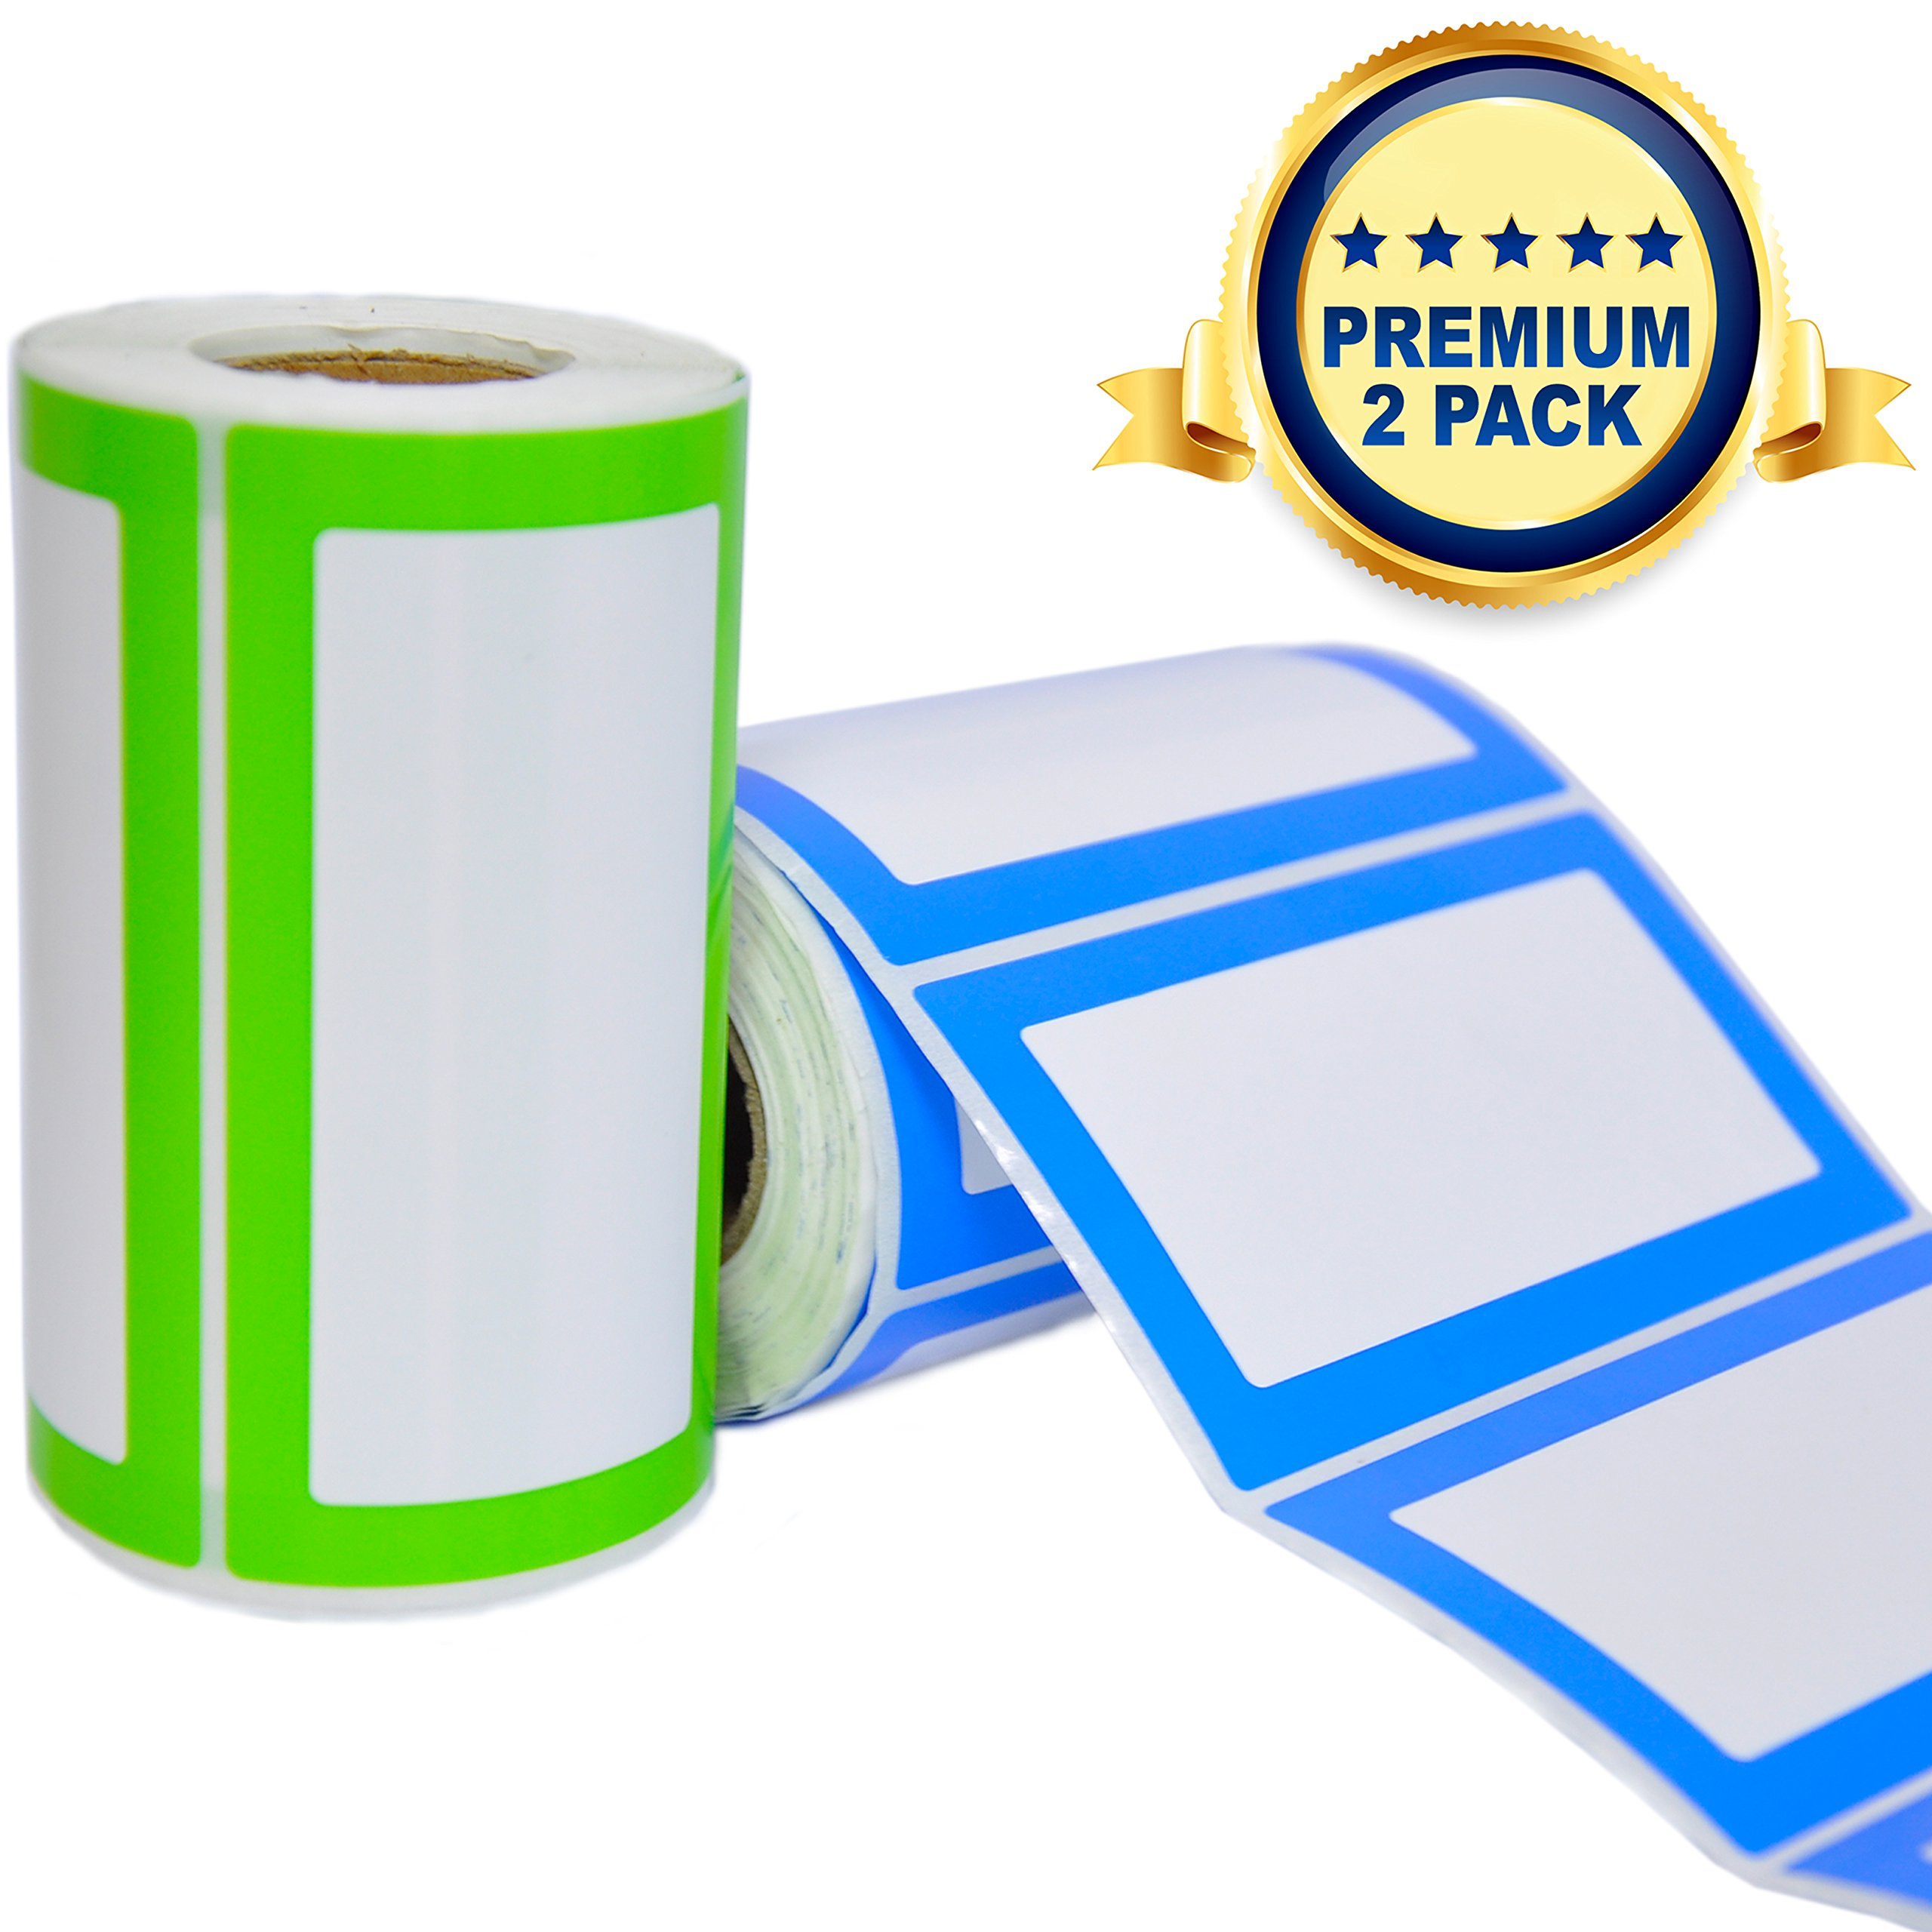 Colorful Plain Name Tag Labels - 2 Rolls 500 Stickers in Total - 3.5 x 2 inches - Nametags for Jars, Bottles, Food Containers, Folders, Birthday Parties and Kids Clothes (Blue/Green 2 Pack)